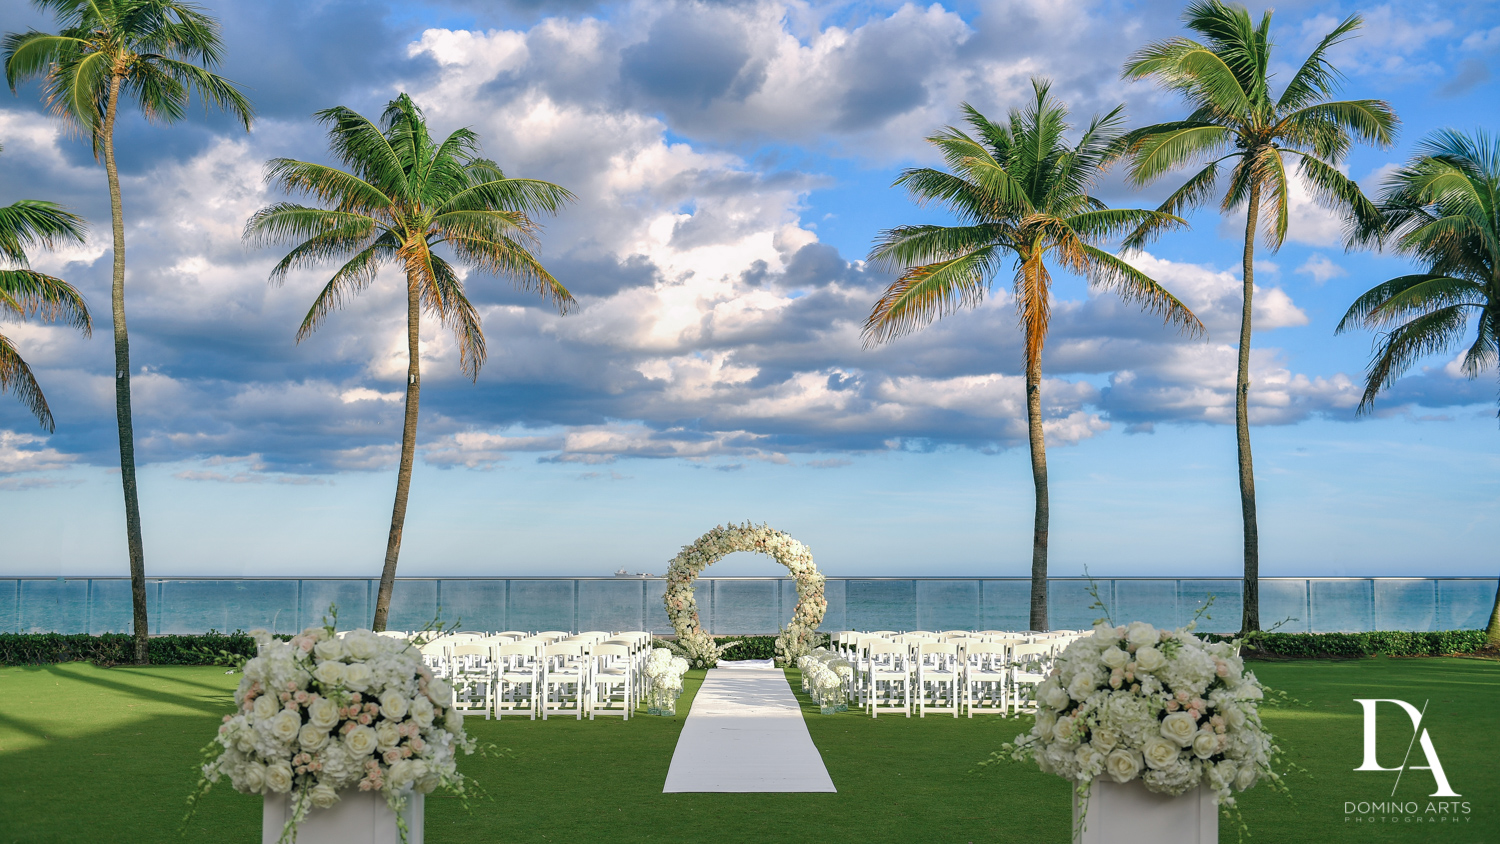 ceremony decor at Extravagant Wedding at The Breakers Palm Beach by Domino Arts Photography